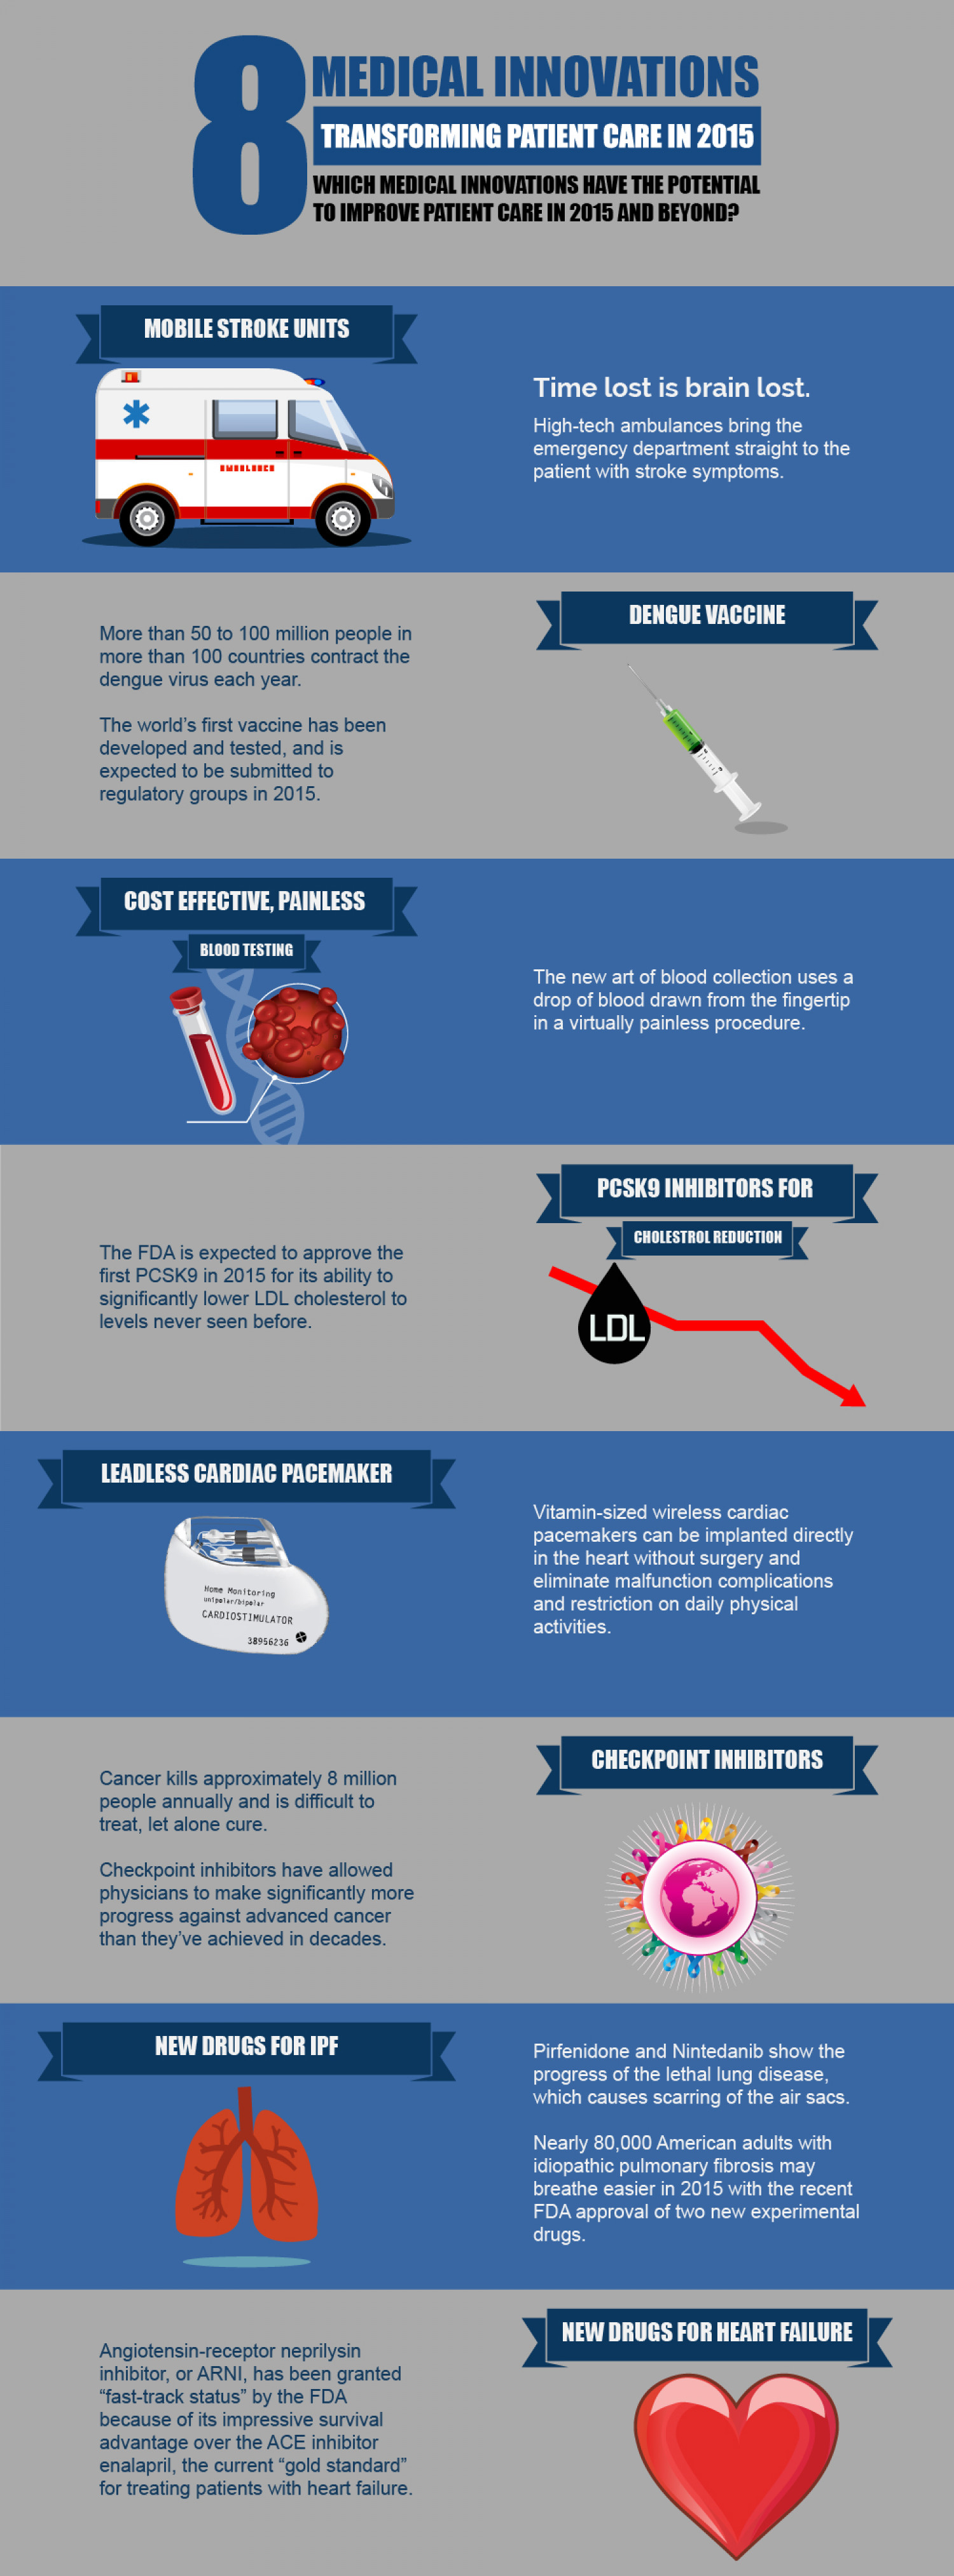 8 medical innovations transforming patient care in 2015 Infographic